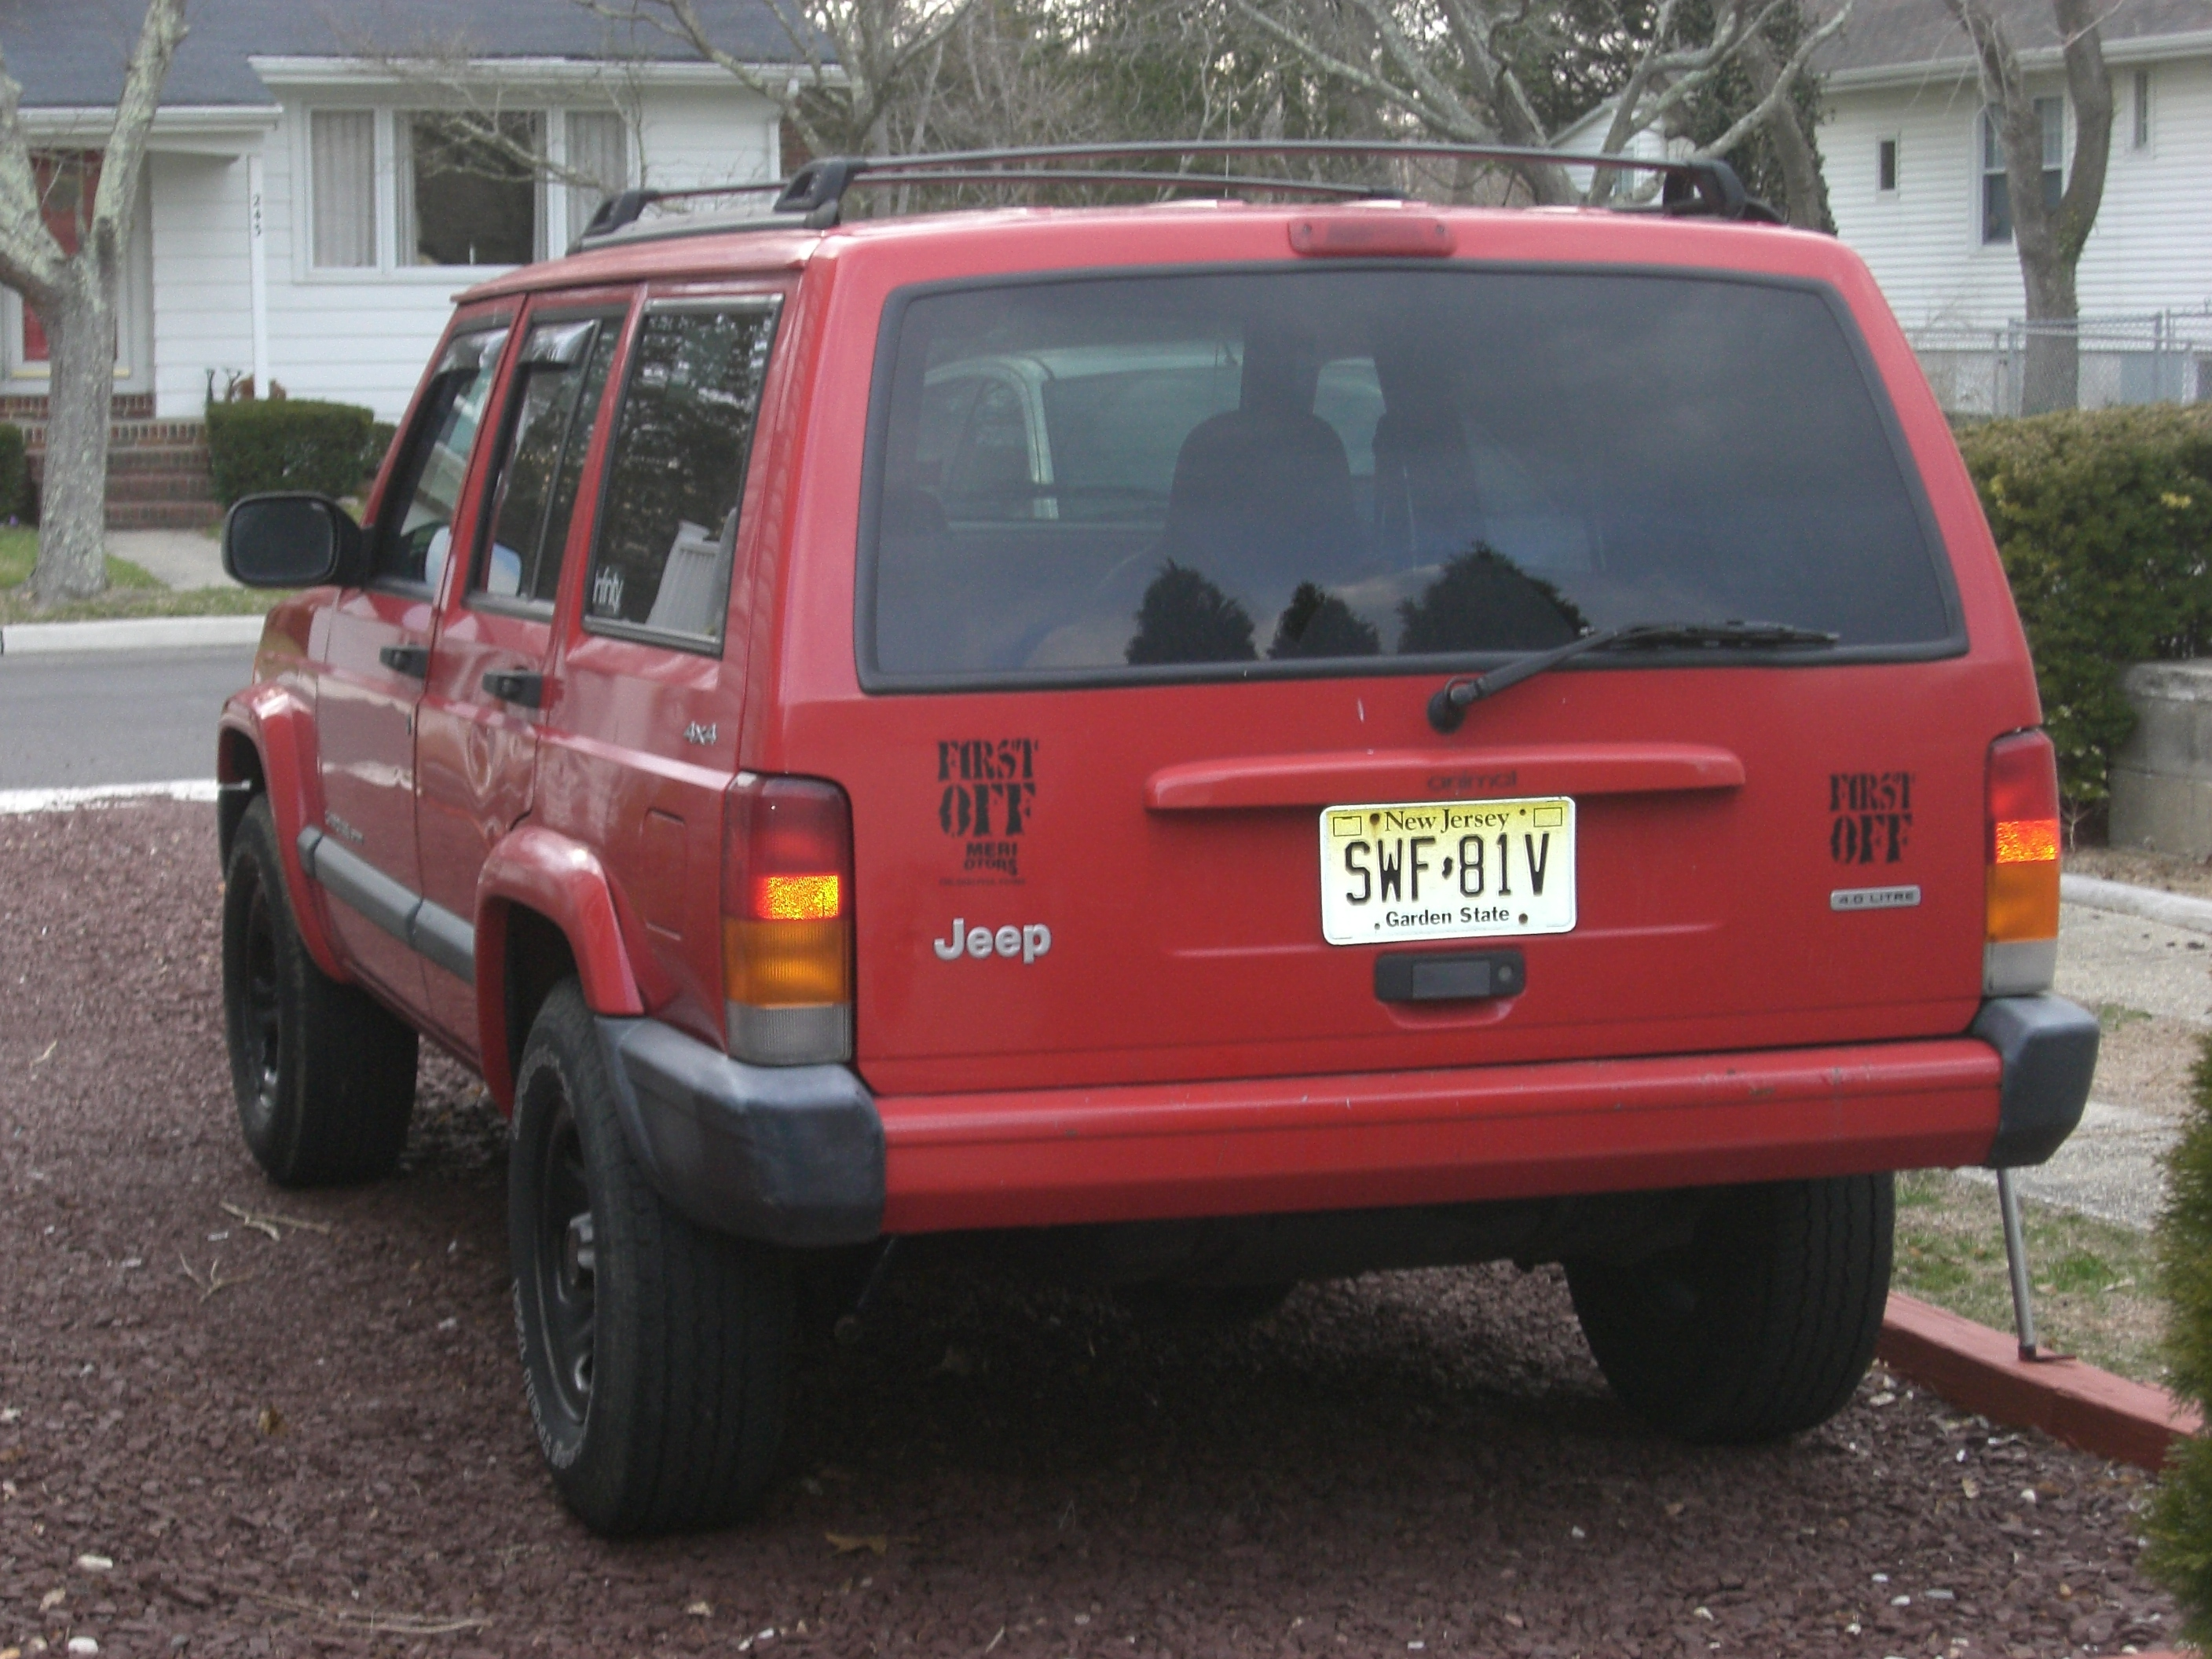 jesseh7 39 s 2000 jeep cherokee in absecon nj. Black Bedroom Furniture Sets. Home Design Ideas